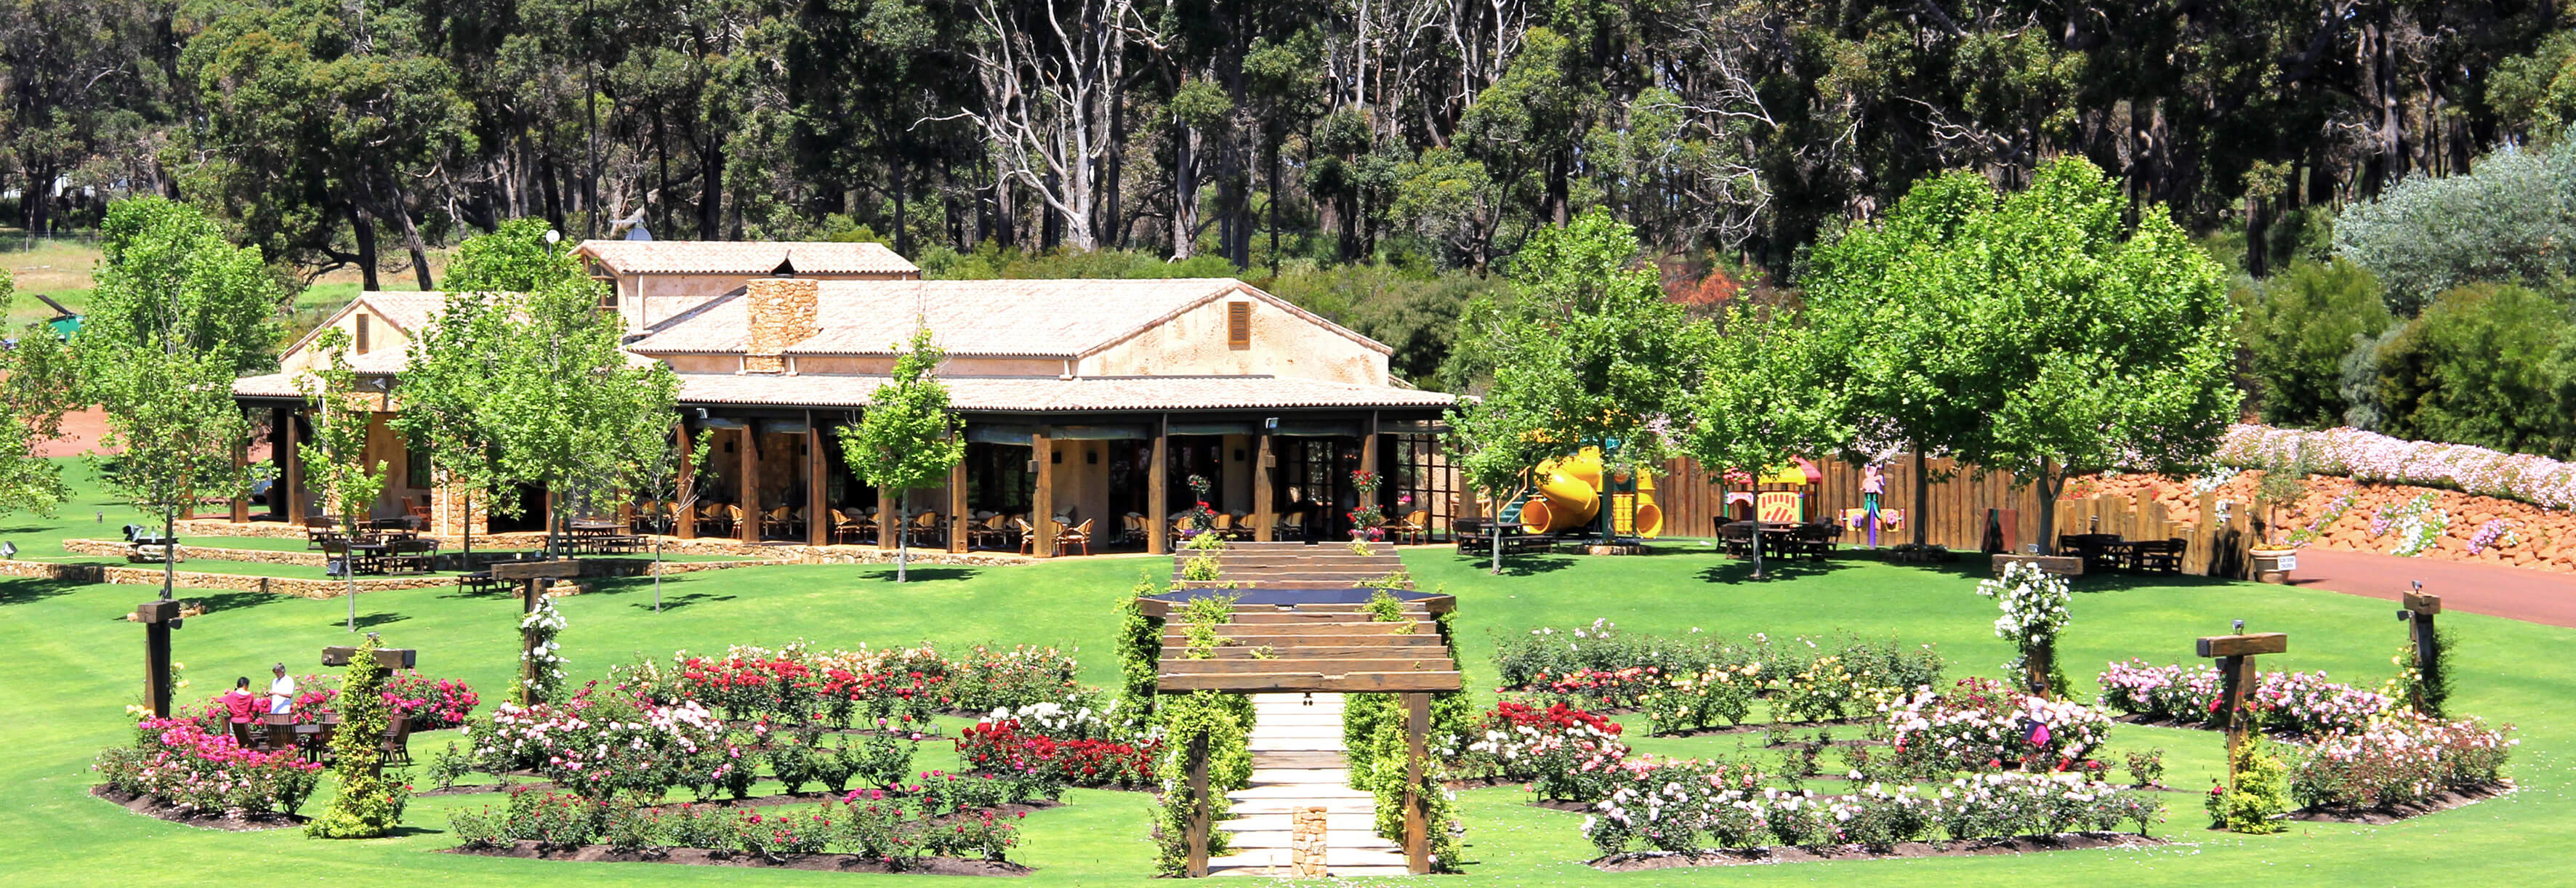 Margaret River Cellar Door gardens